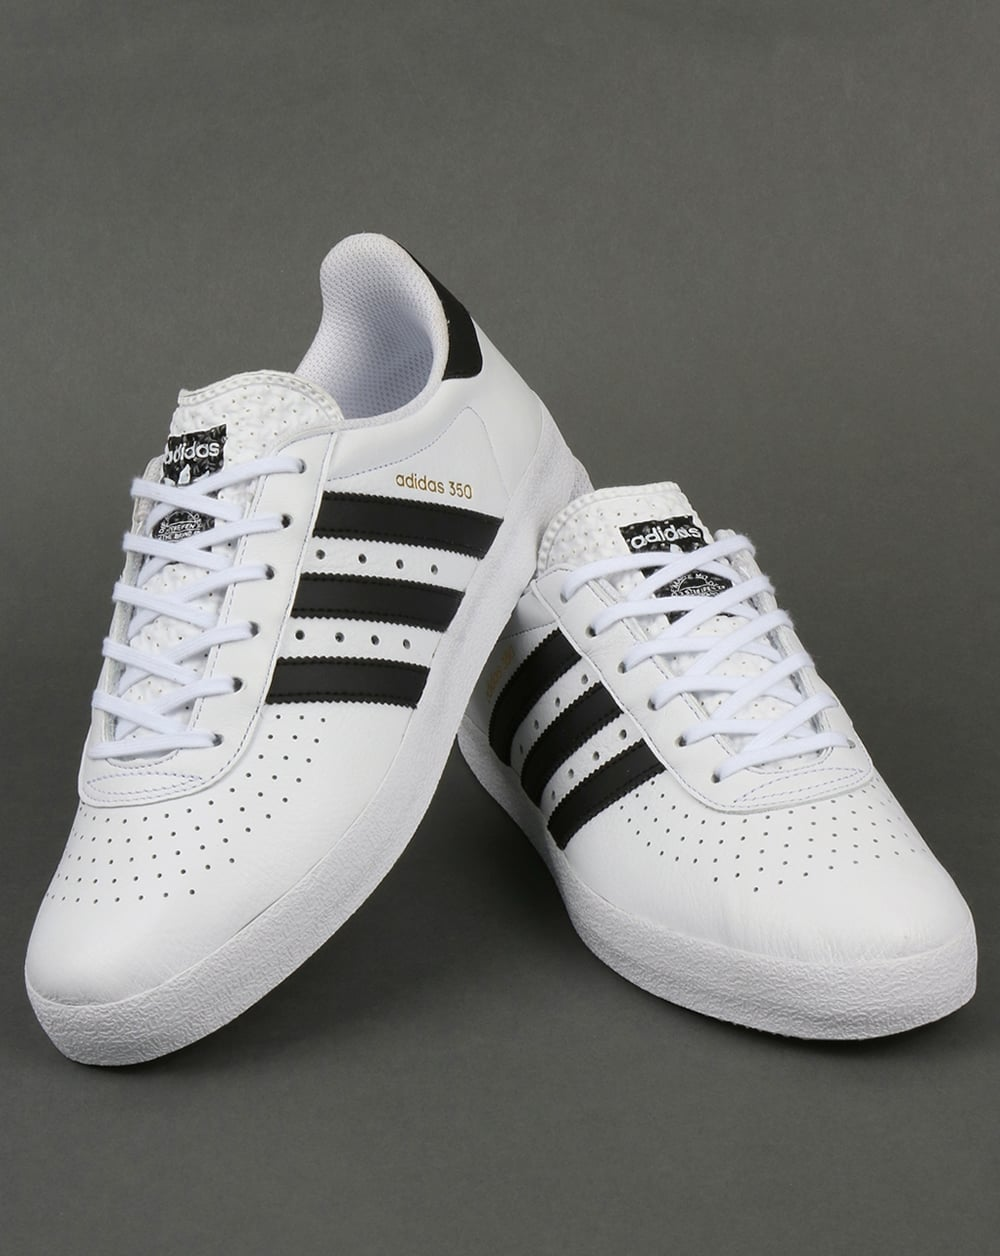 Adidas Tennis Shoes Size Chart